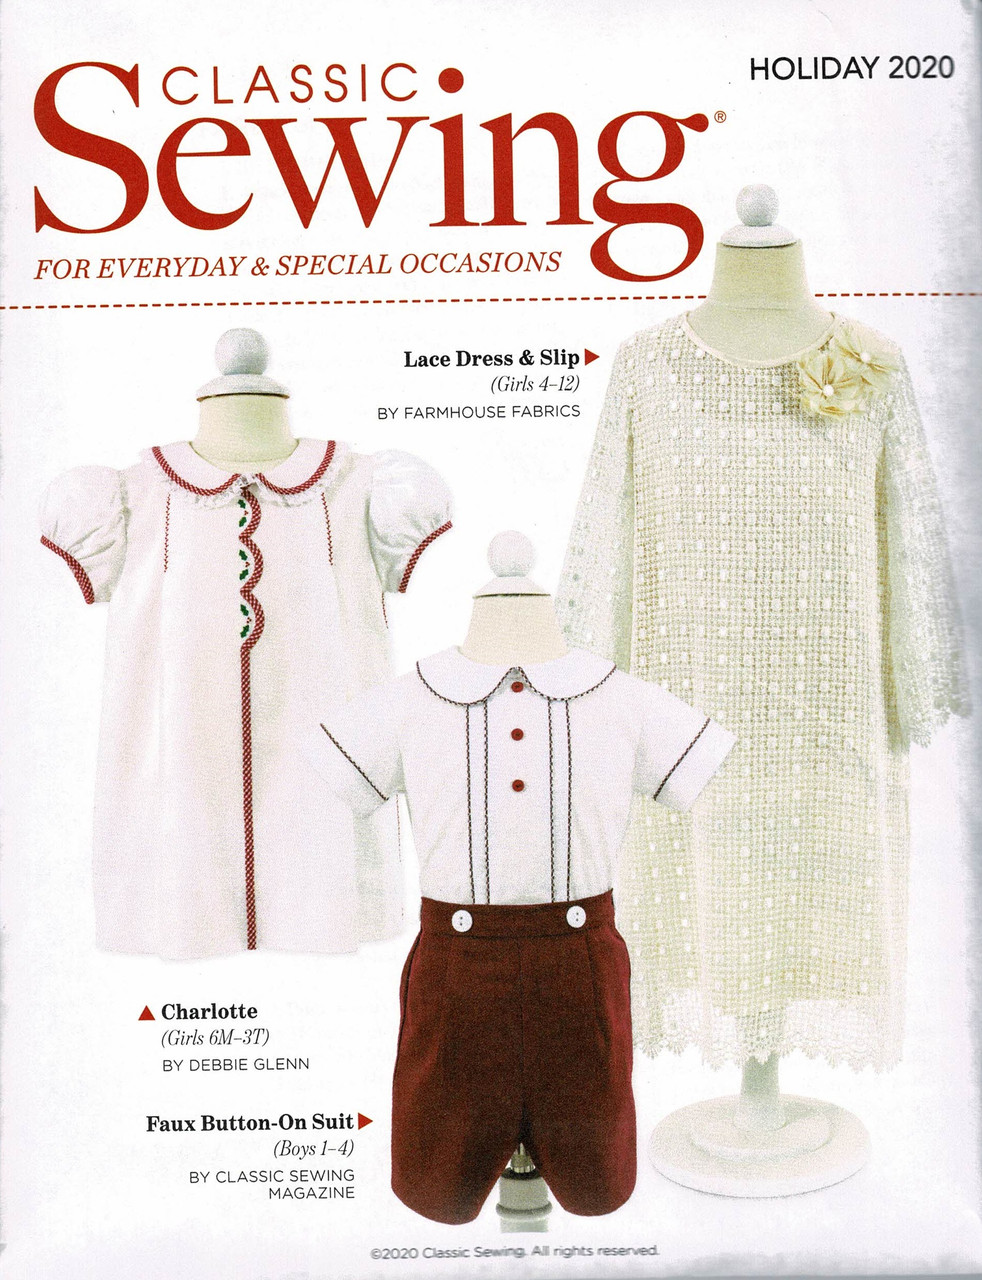 Patterns included in the Classic Sewing magazine holiday issue 2020